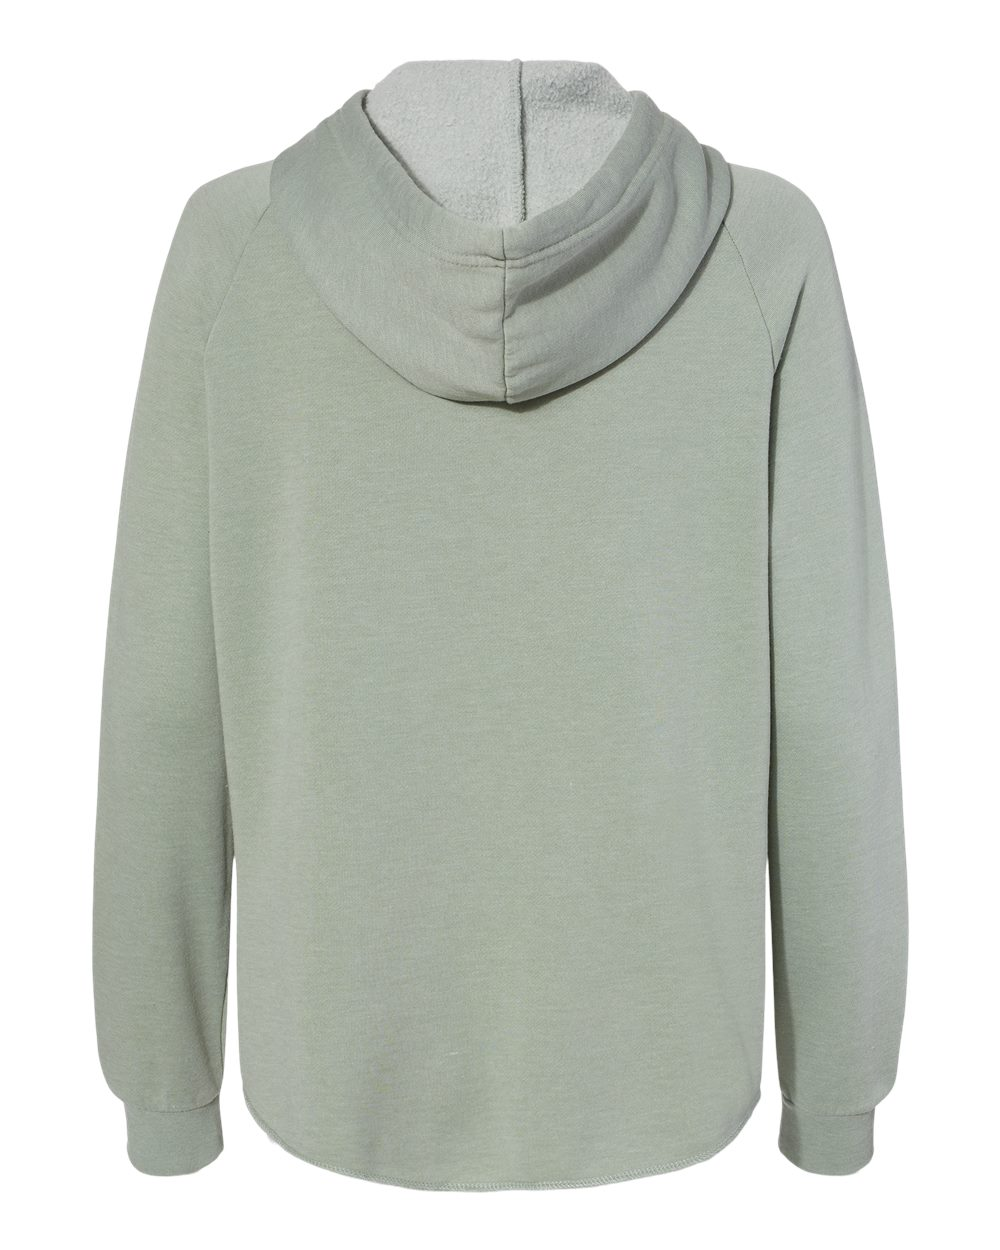 Independent-Trading-Co-Women-039-s-Wave-Wash-Full-Zip-Hooded-Sweatshirt-PRM2500Z thumbnail 16